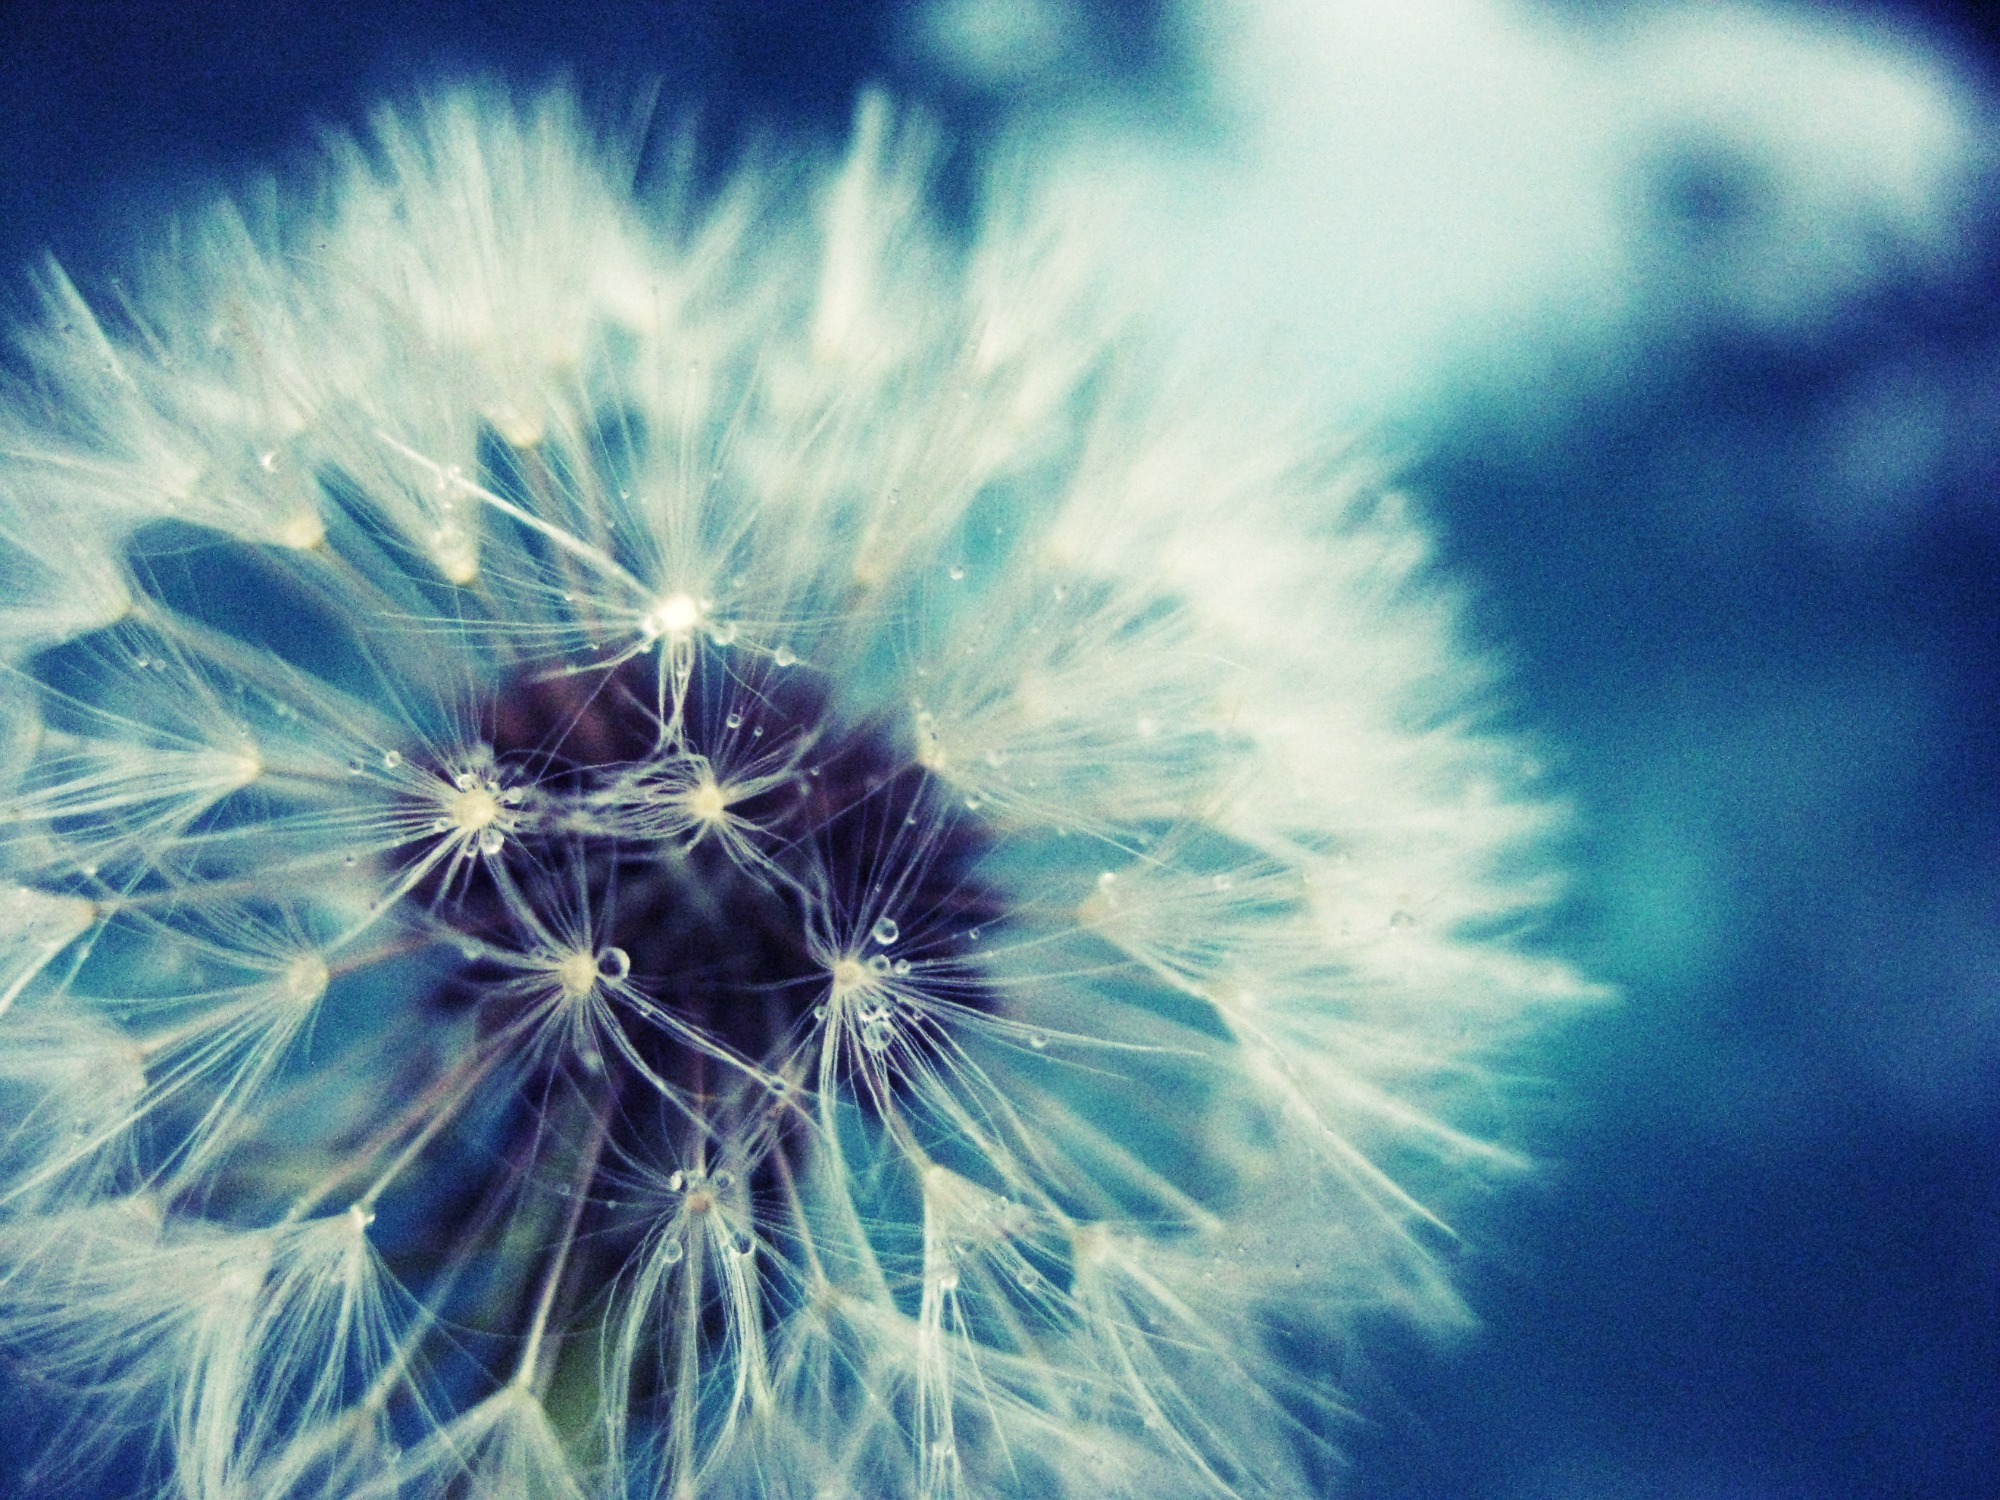 Dandelion flower wallpaper Desktop Backgrounds for HD Wallpaper 2000x1500